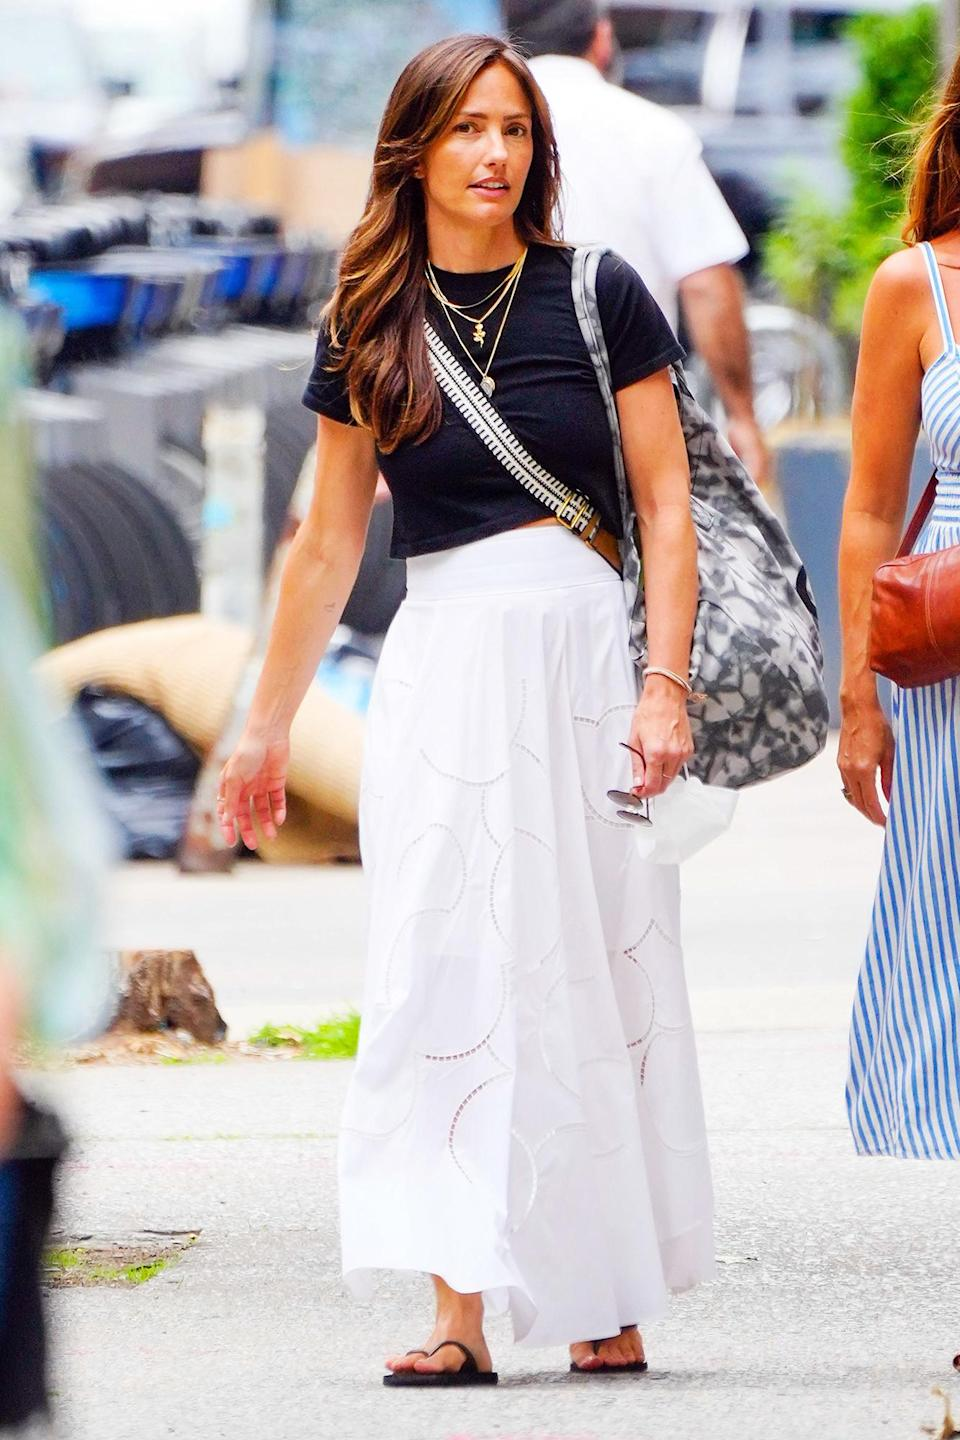 <p>Minka Kelly heads out to eat and shop with a girlfriend in N.Y.C. on June 8.</p>